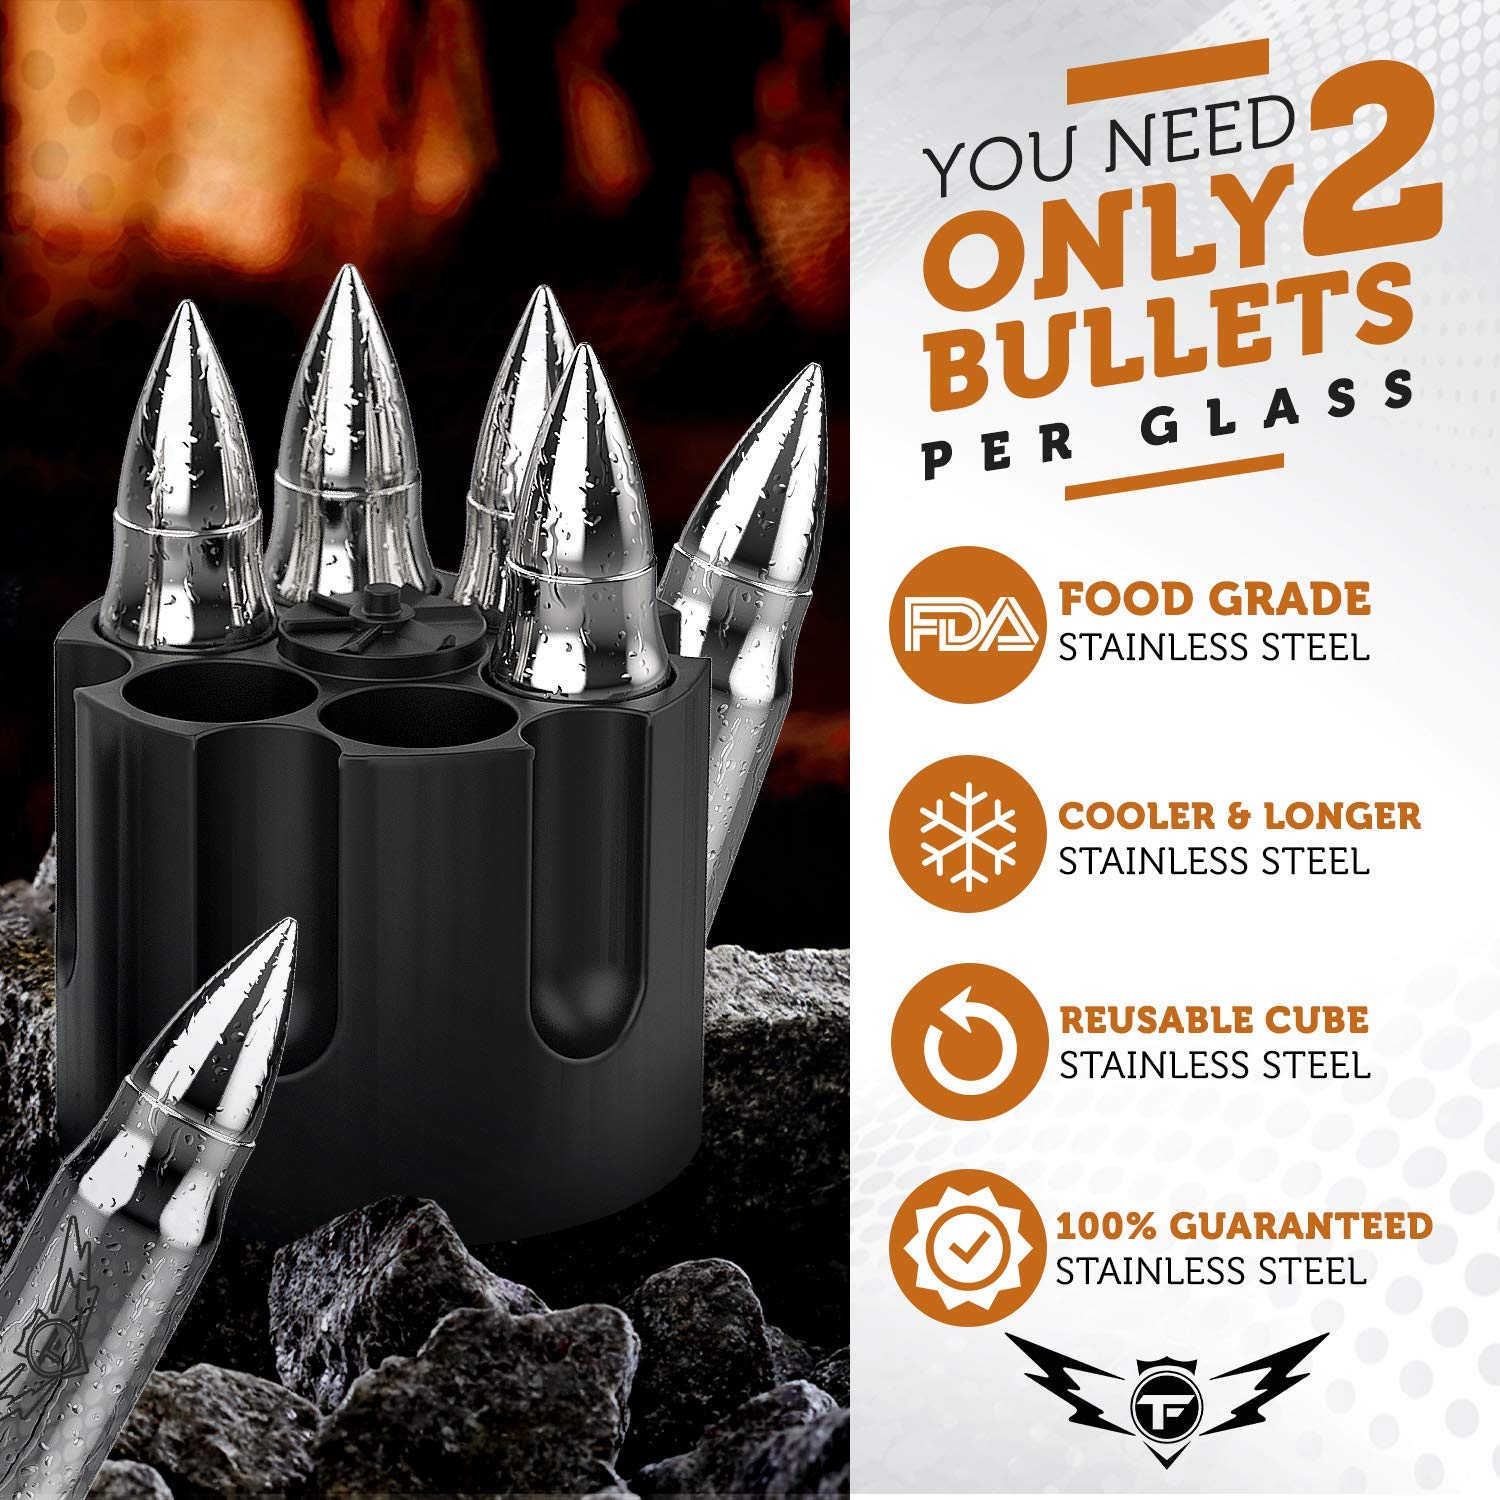 Bullet Shaped Metal Whiskey Stones - 6-Pack Stainless Steel Whiskey Rocks | Metal Ice Cubes to Chill Bourbon, Scotch in Your Whisky Glass - Cool Gifts for Men, Father's Day, Christmas Stocking Stuffer by TF TAKEFLIGHT (Image #4)